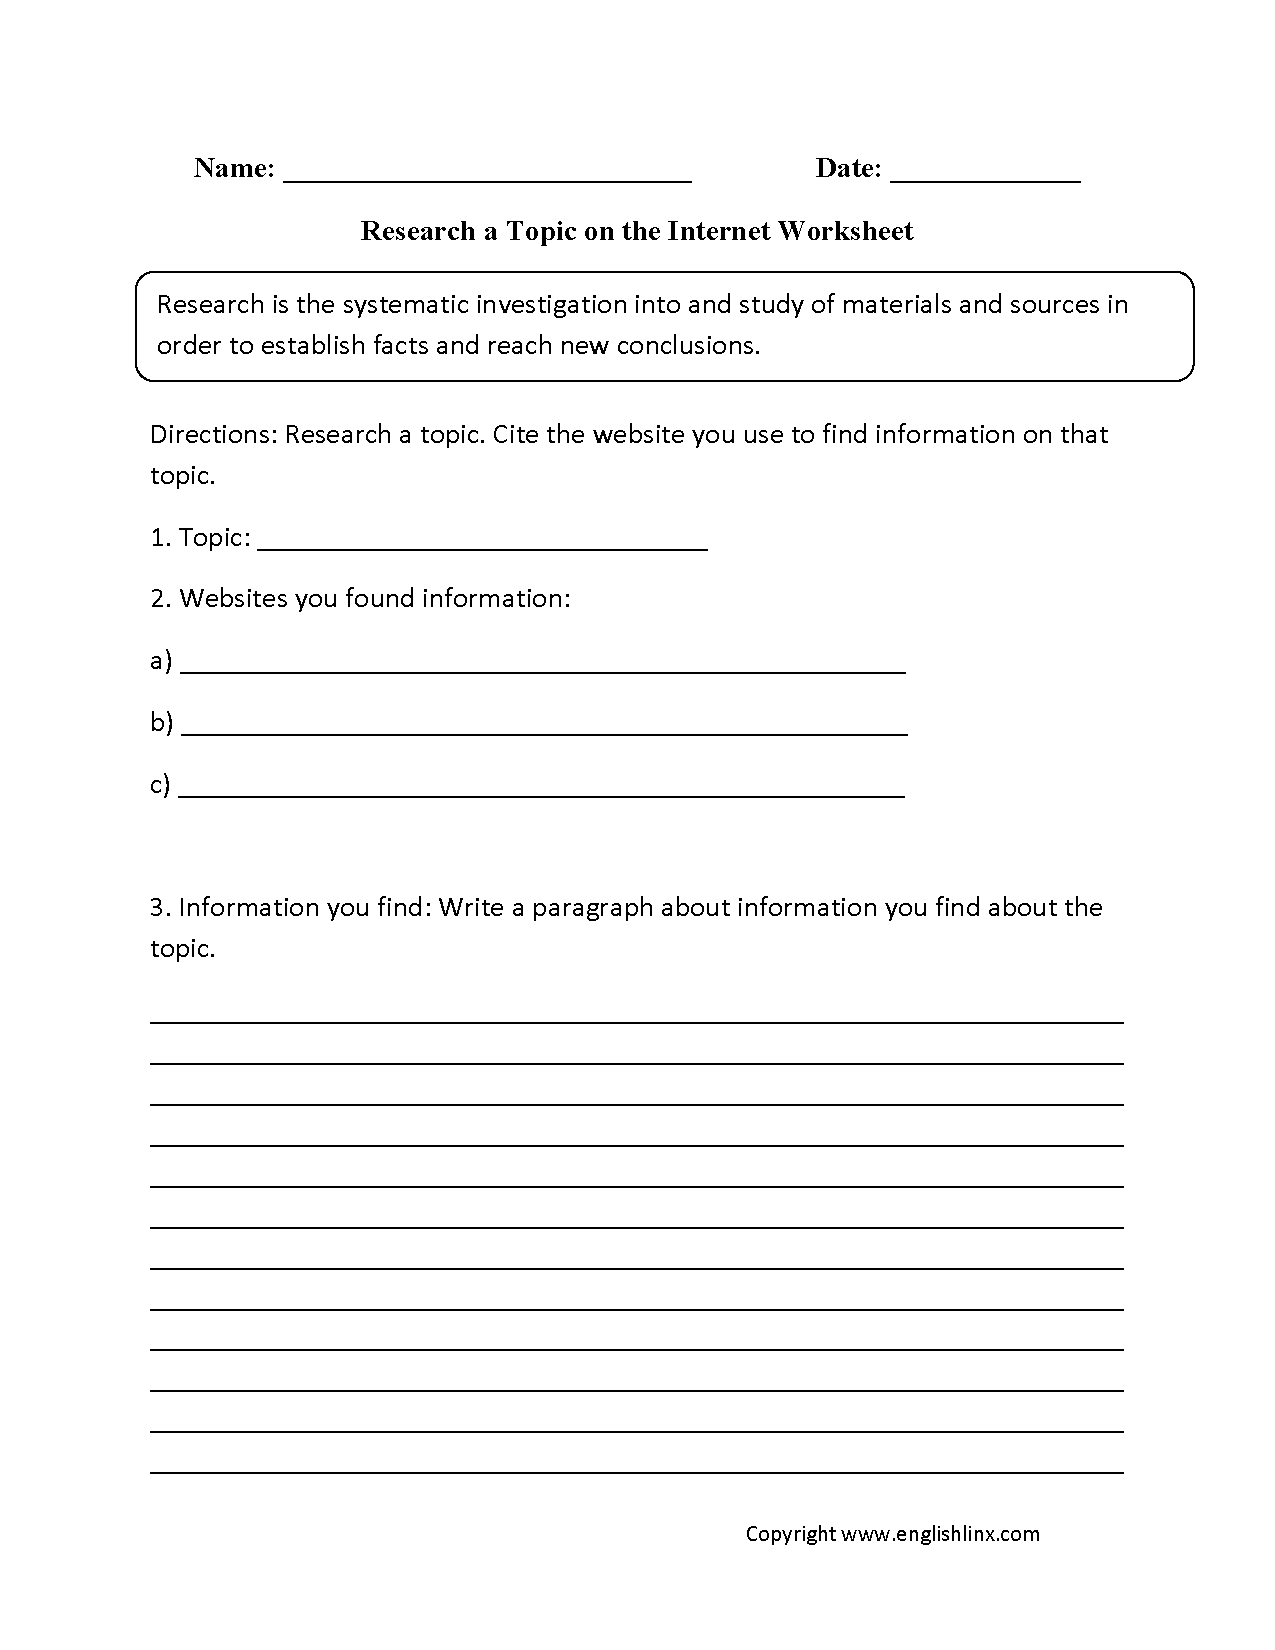 Aldiablosus  Remarkable Englishlinxcom  Research Worksheets With Goodlooking On The Internet Worksheet With Beauteous Free Number Worksheets Also Noun Worksheets Th Grade In Addition Snowman Worksheets And Moles Worksheet With Answers As Well As Rounding To The Nearest Ten And Hundred Worksheet Additionally Free Th Grade Science Worksheets From Englishlinxcom With Aldiablosus  Goodlooking Englishlinxcom  Research Worksheets With Beauteous On The Internet Worksheet And Remarkable Free Number Worksheets Also Noun Worksheets Th Grade In Addition Snowman Worksheets From Englishlinxcom